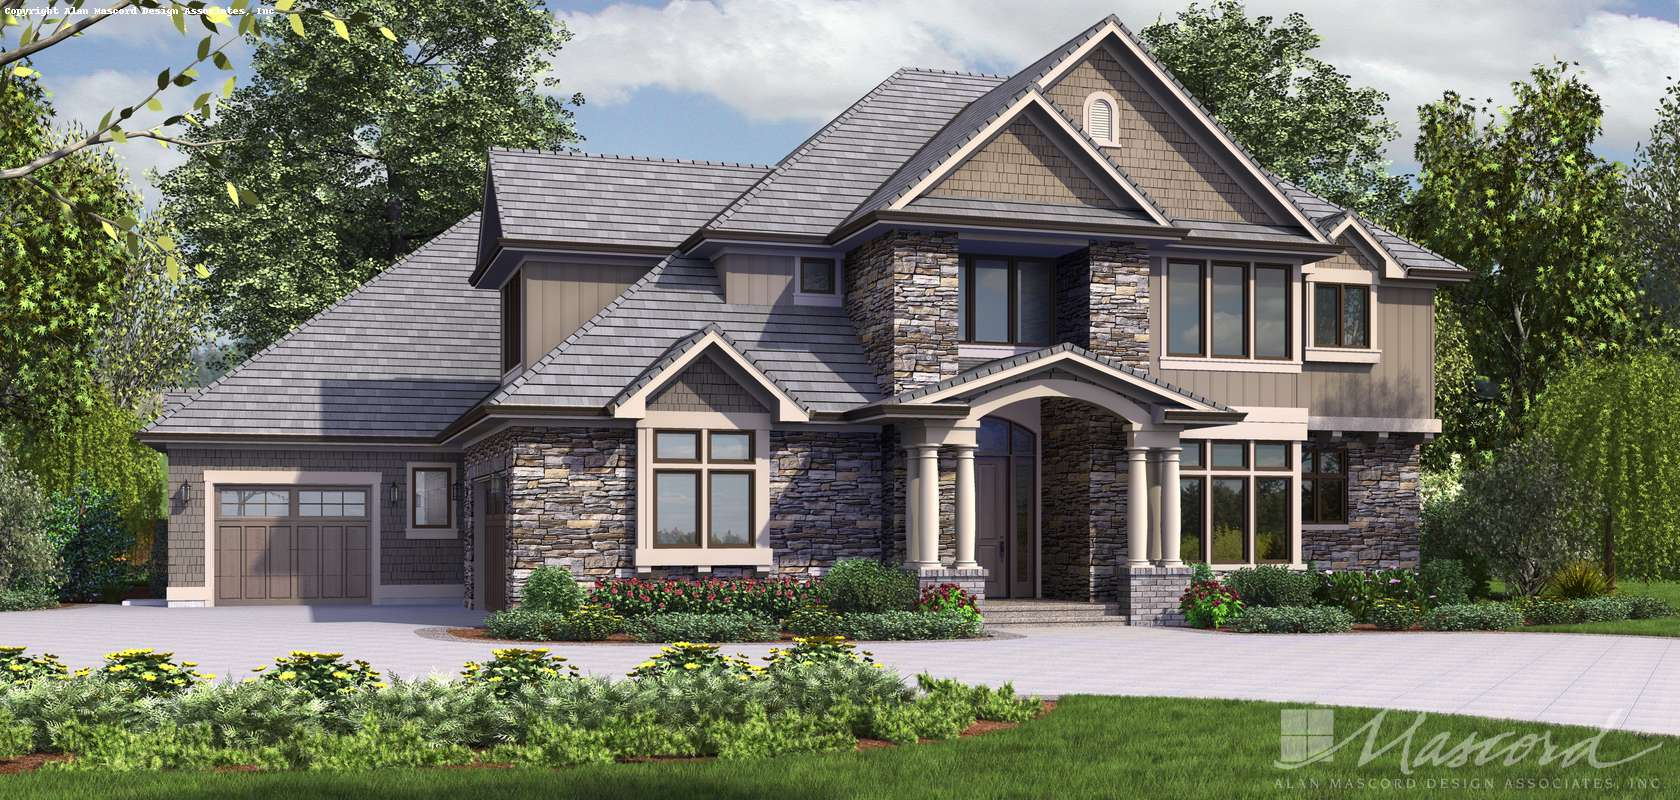 Mascord House Plan 2473: The Rutledge